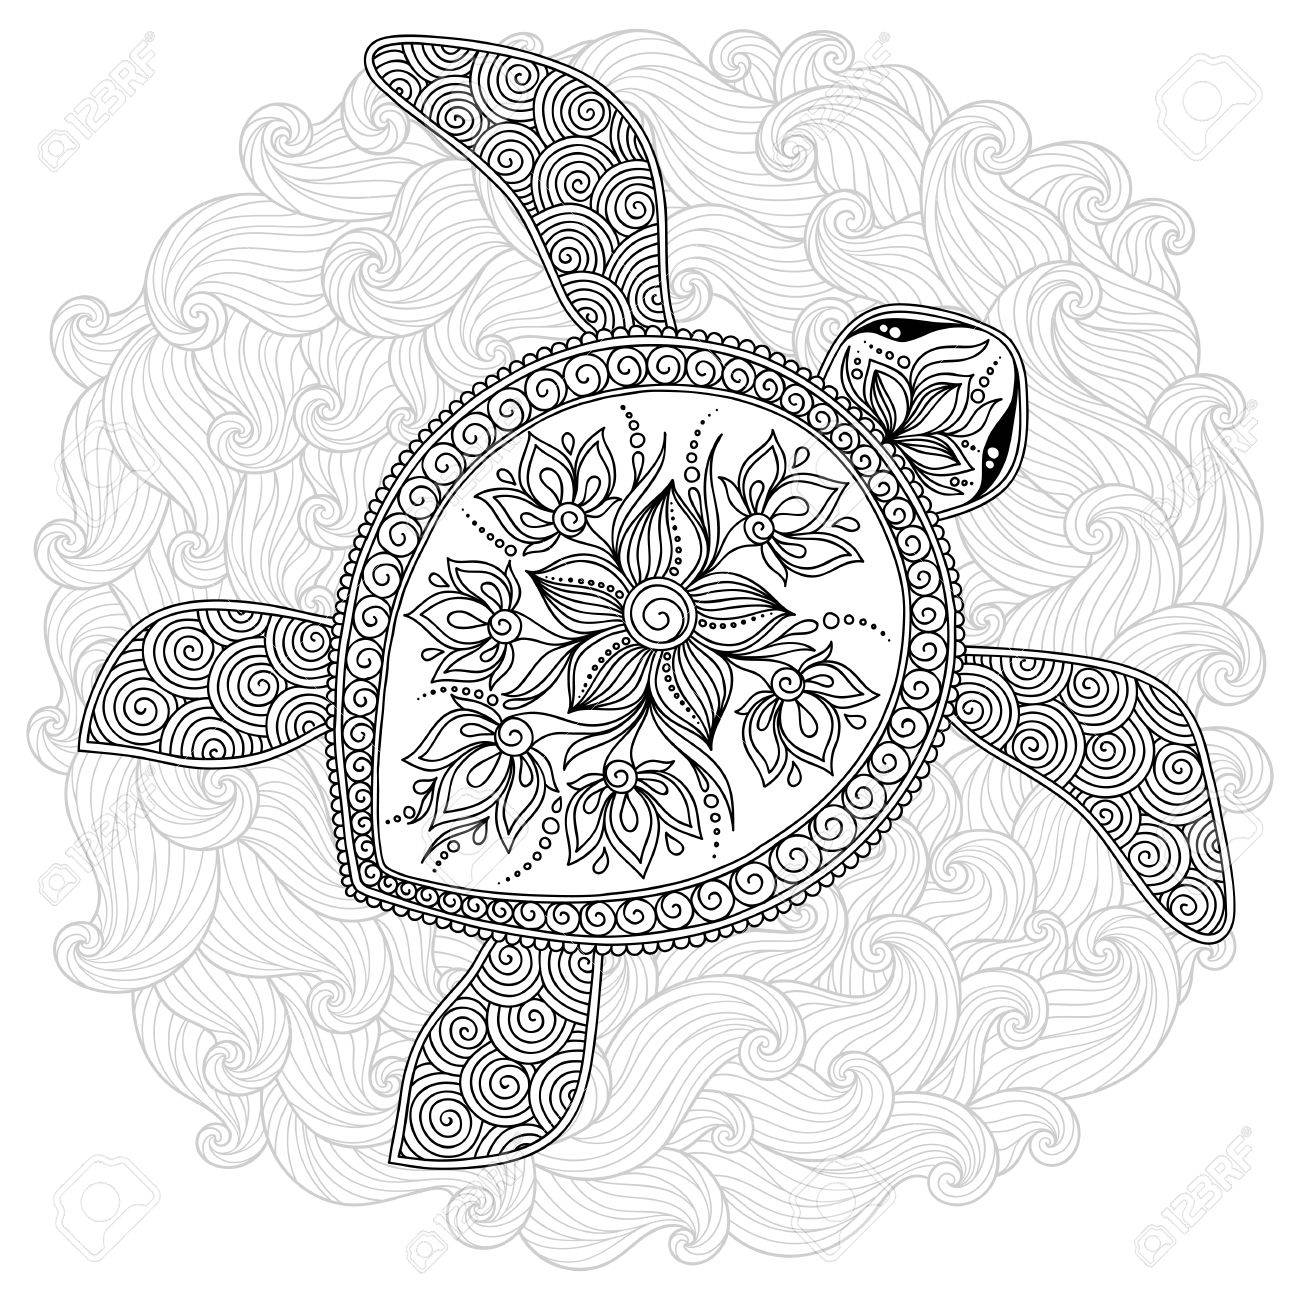 Pattern for coloring book. Coloring book pages for kids and adults. Decorative graphic turtle. Henna Mehndi Tattoo Style Doodles - 51954906